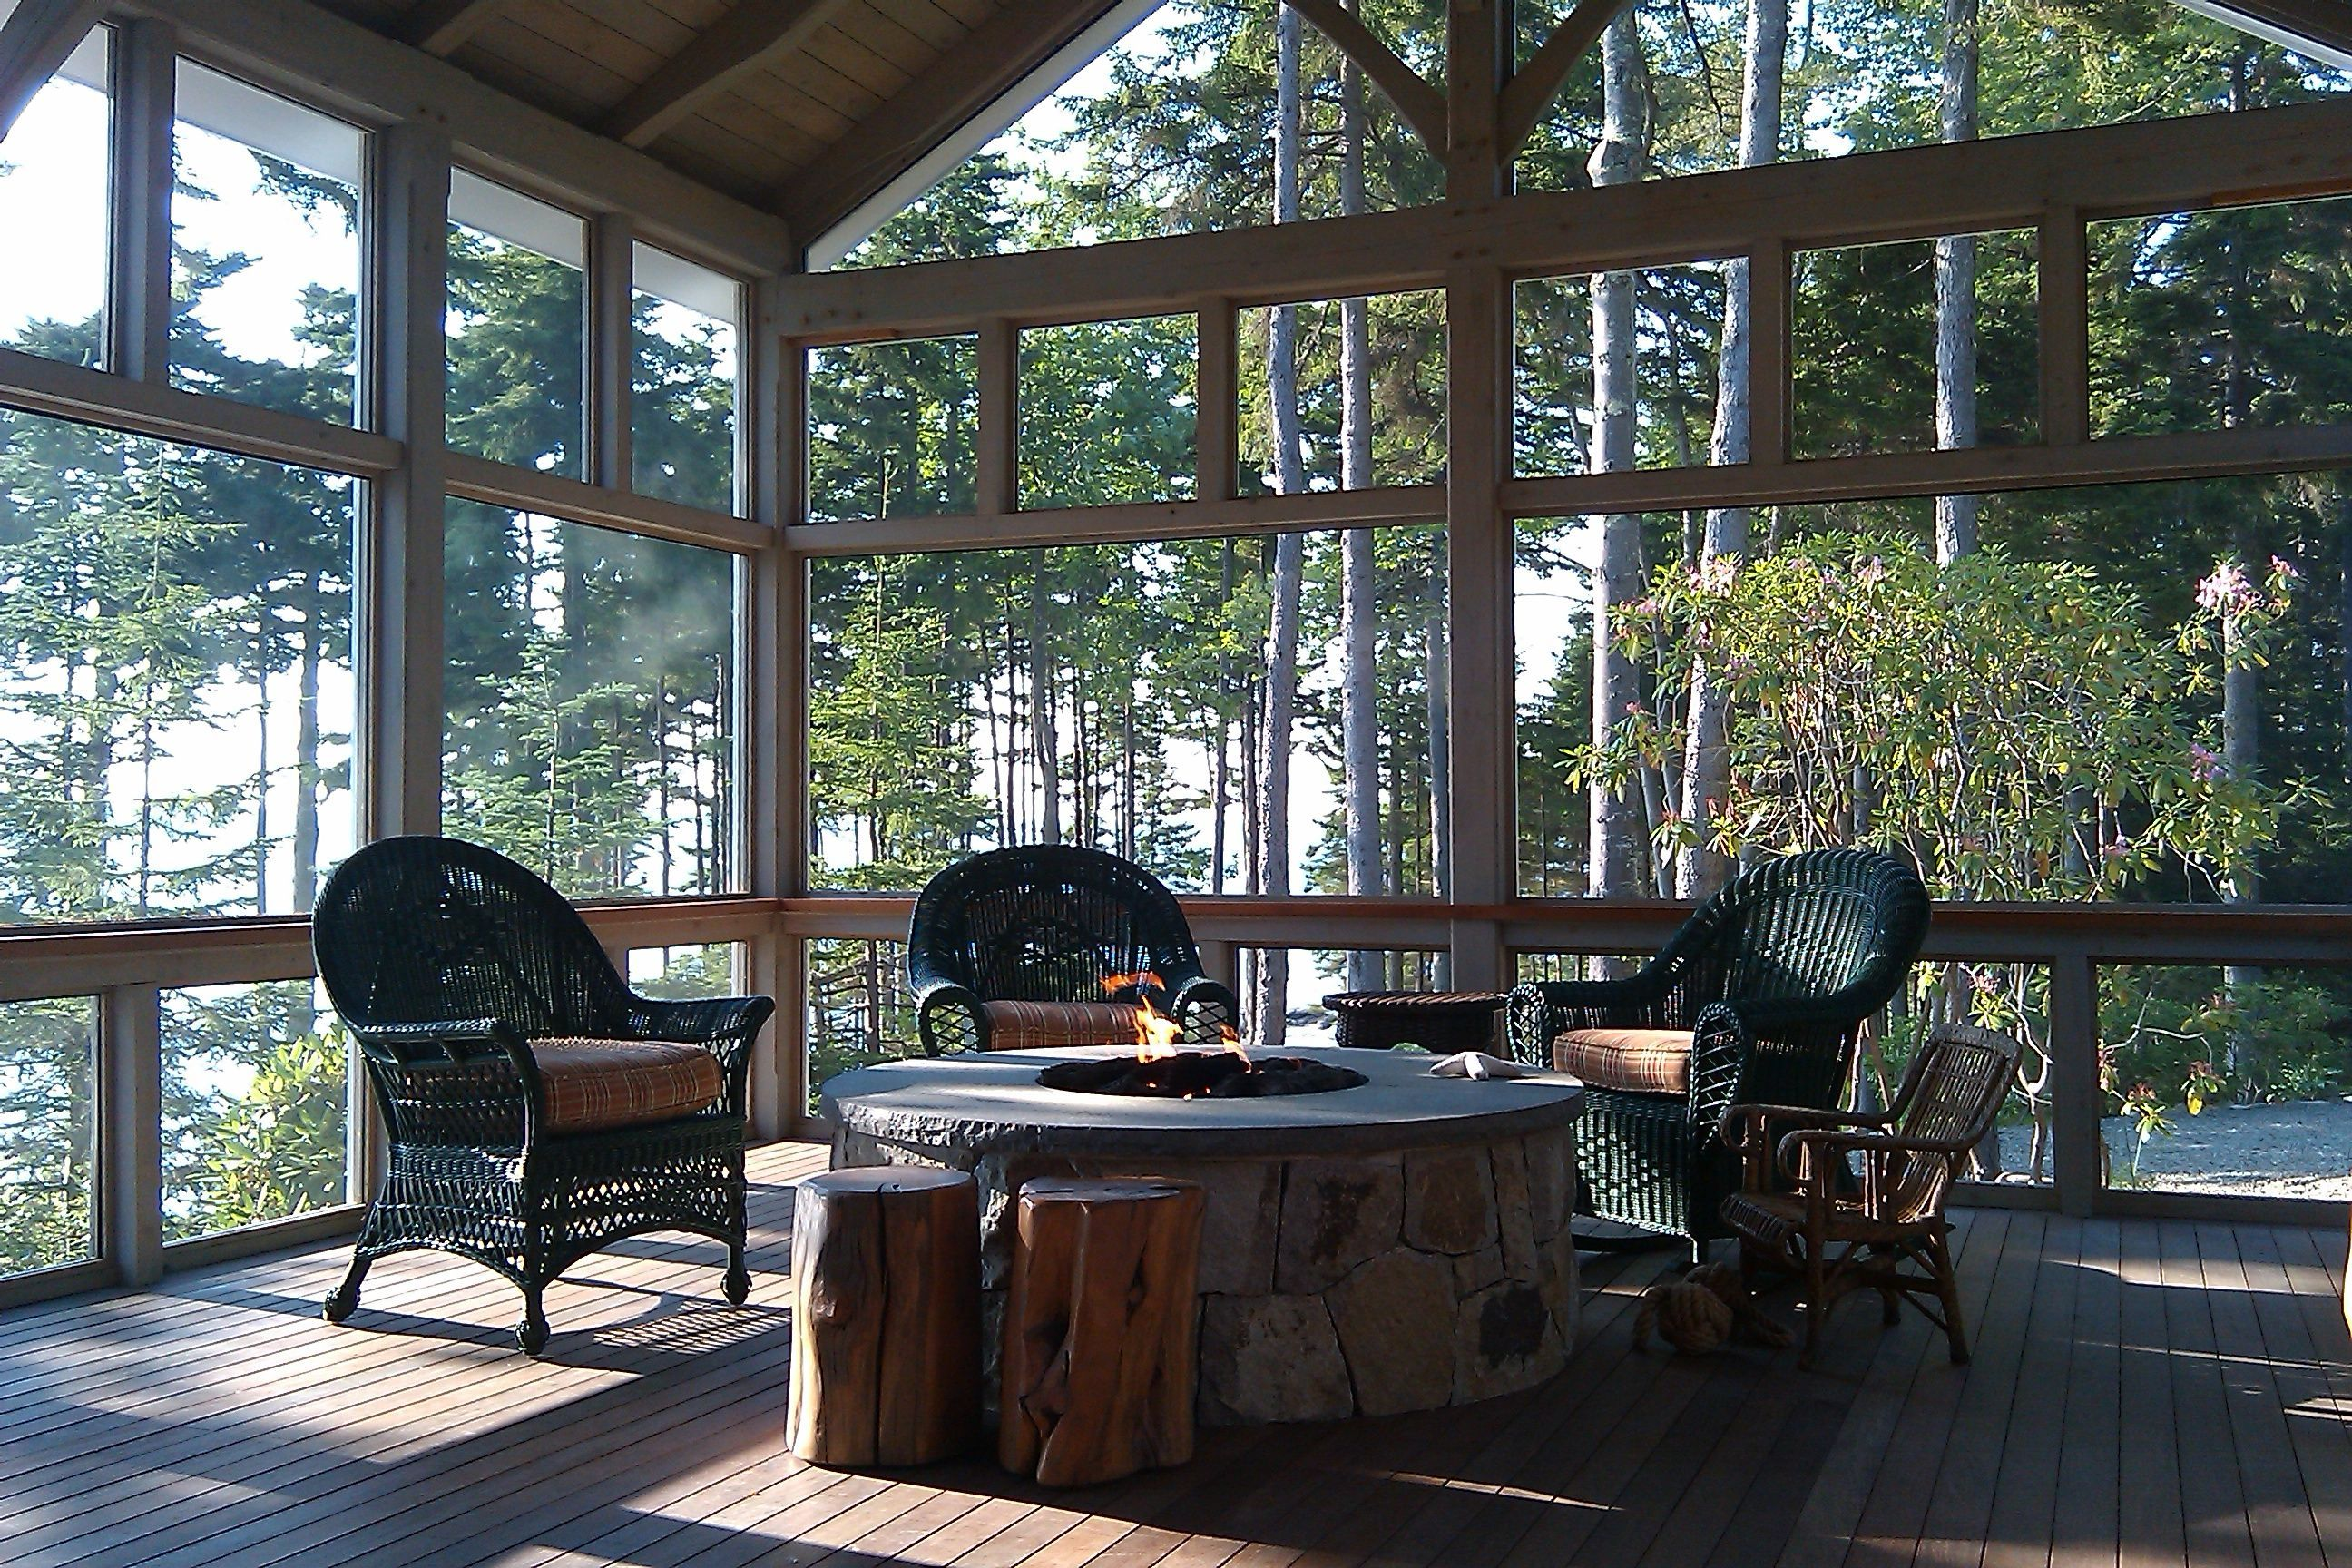 Renovation In Southport Maine Included A Screened Porch With Gas Fire Pit Knickerbocker Group Architect Knickerb Fire Pit Screen Gas Firepit Screened Porch